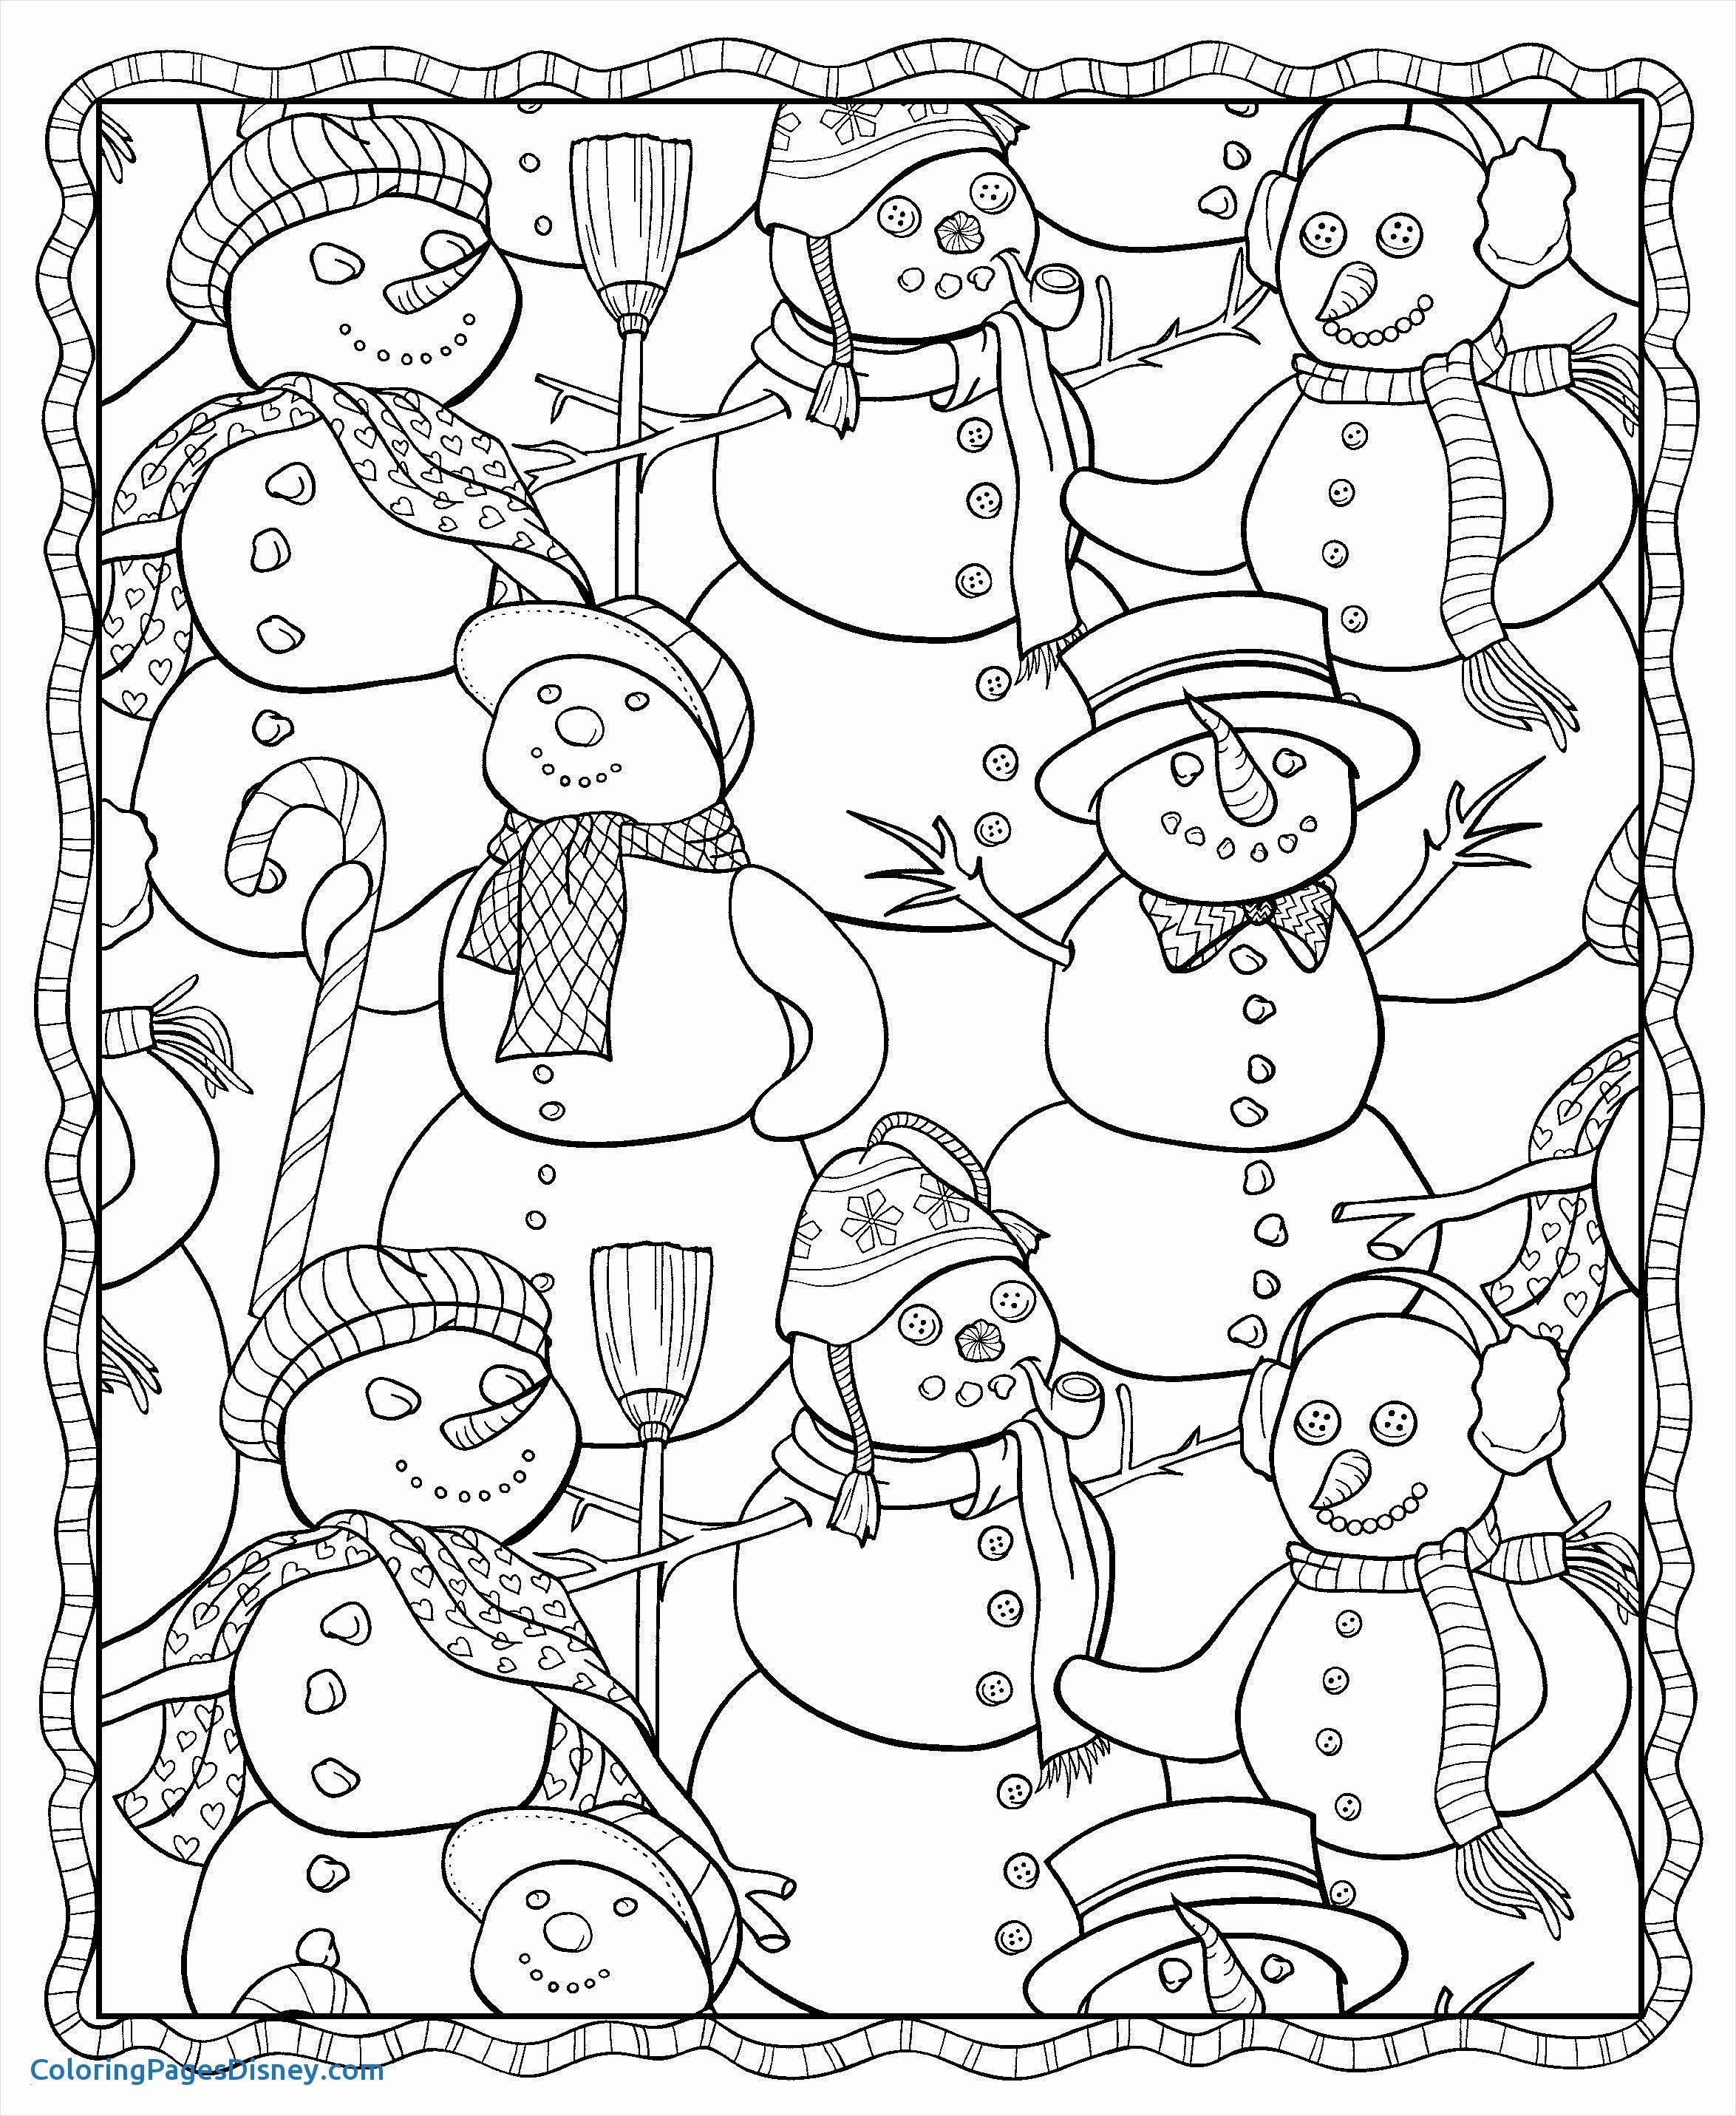 Pin On Number Coloring Pages